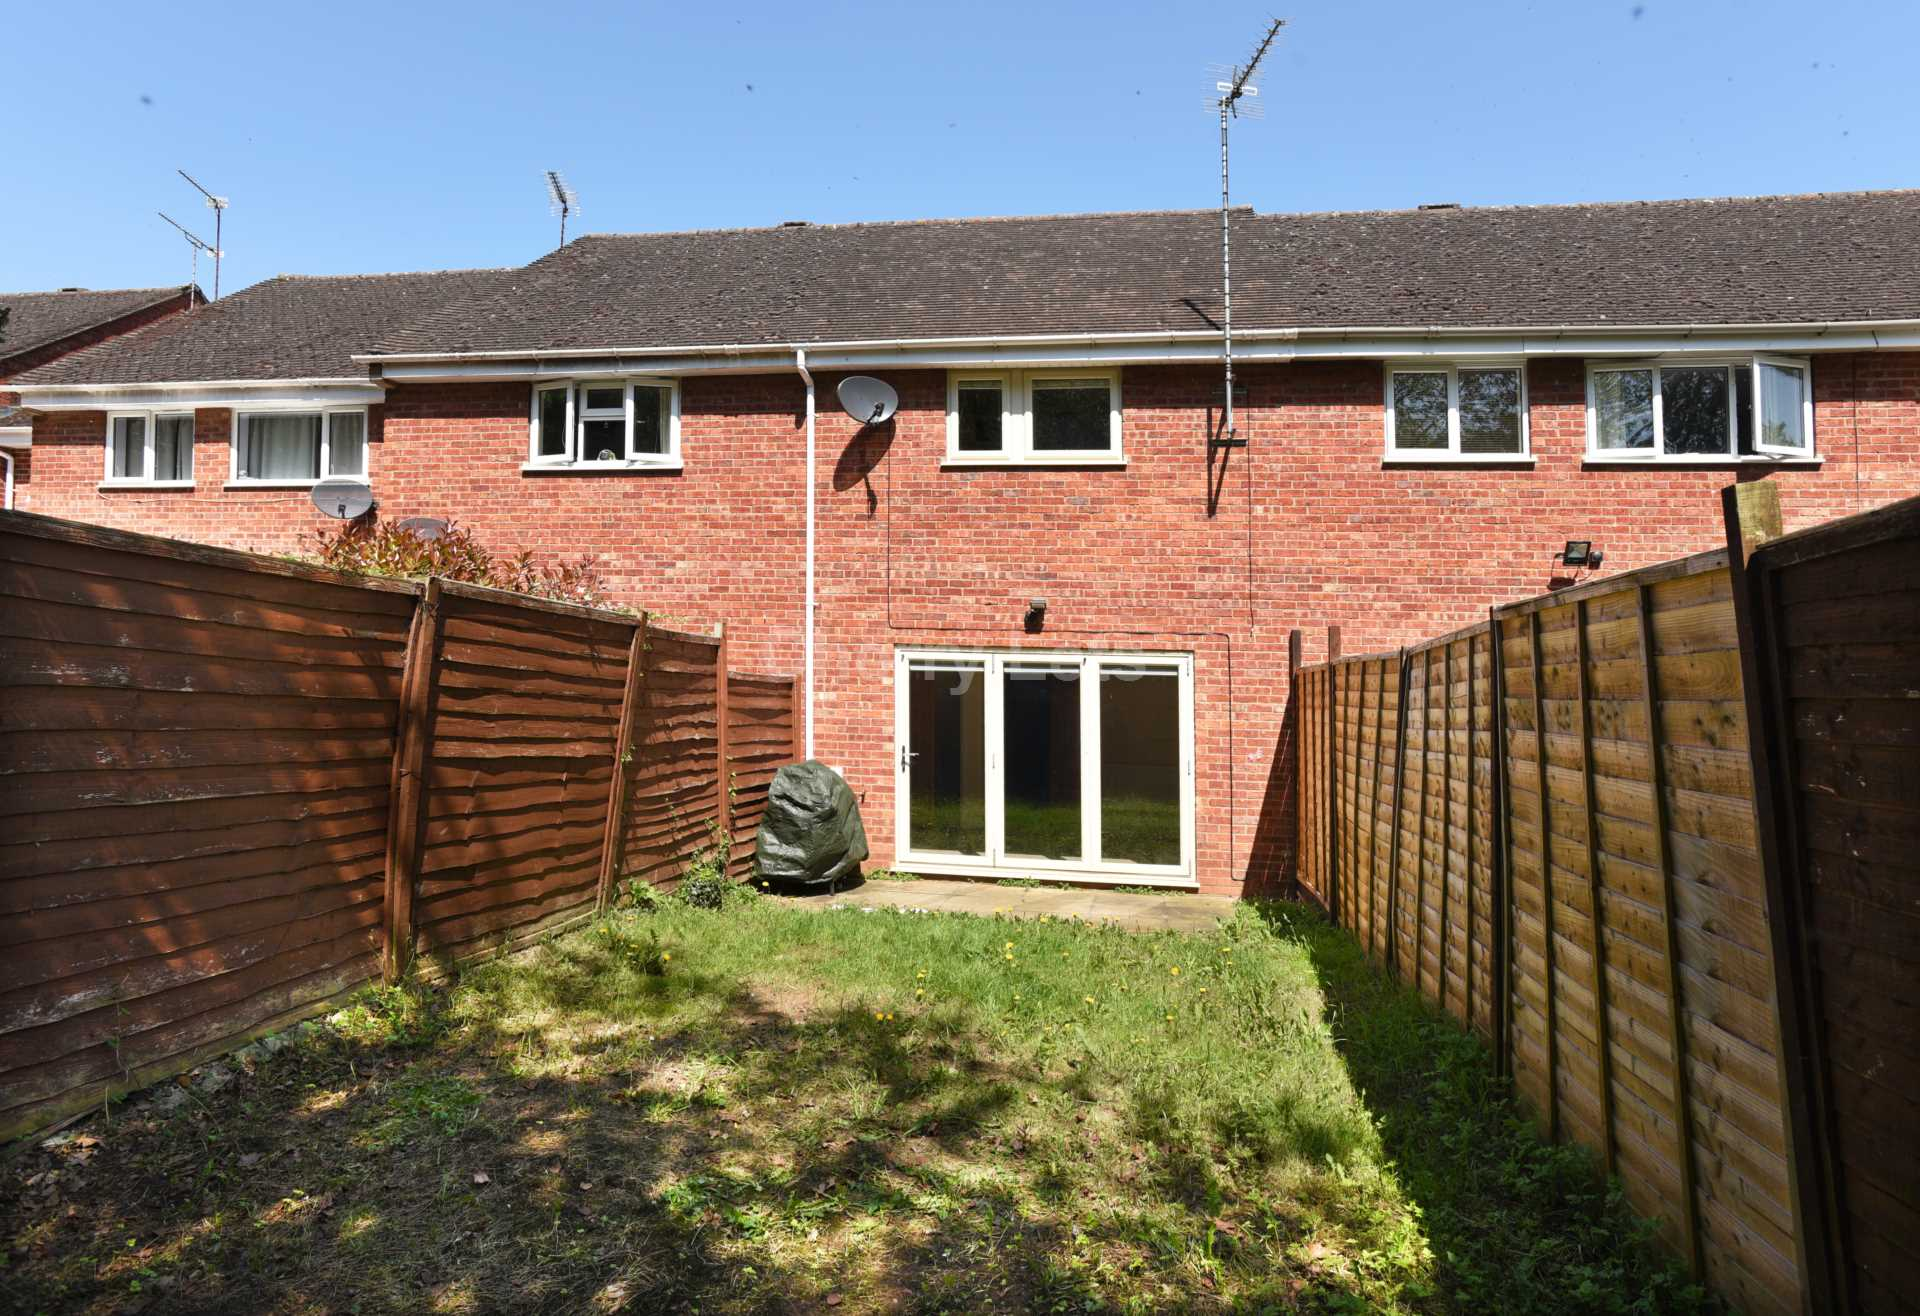 3 bed terraced house to rent in Keytes Close, Adderbury, OX17 12